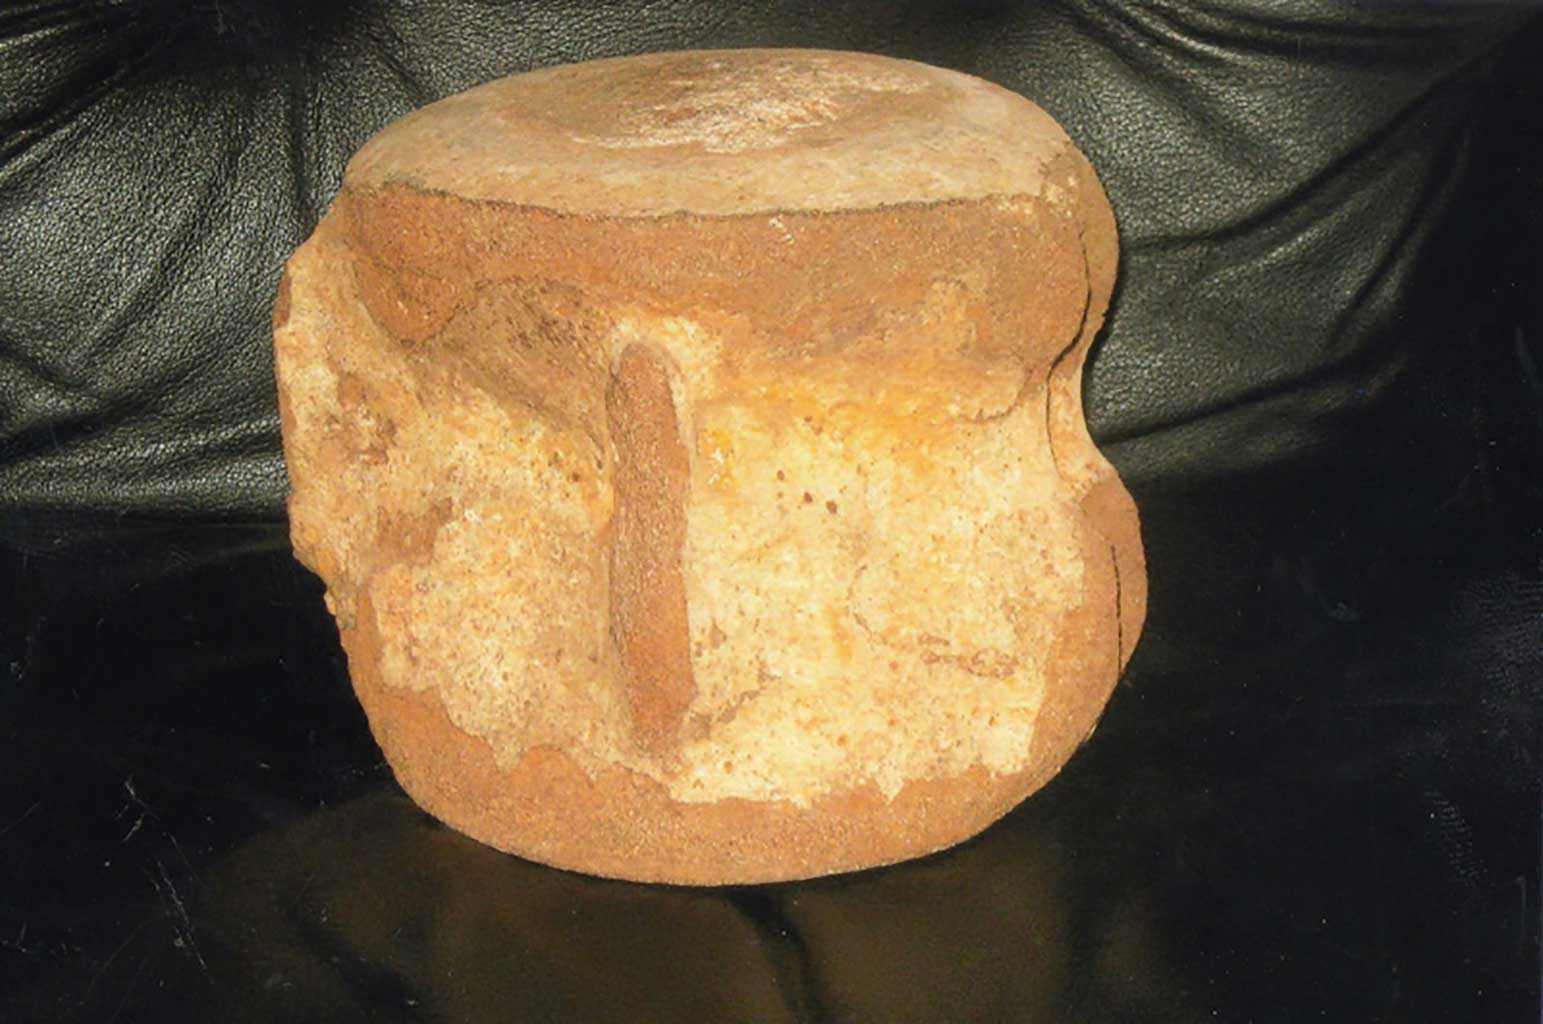 15-million-year-old-whale-bone-found-in-marl-pit-in-chuckatuck-img388